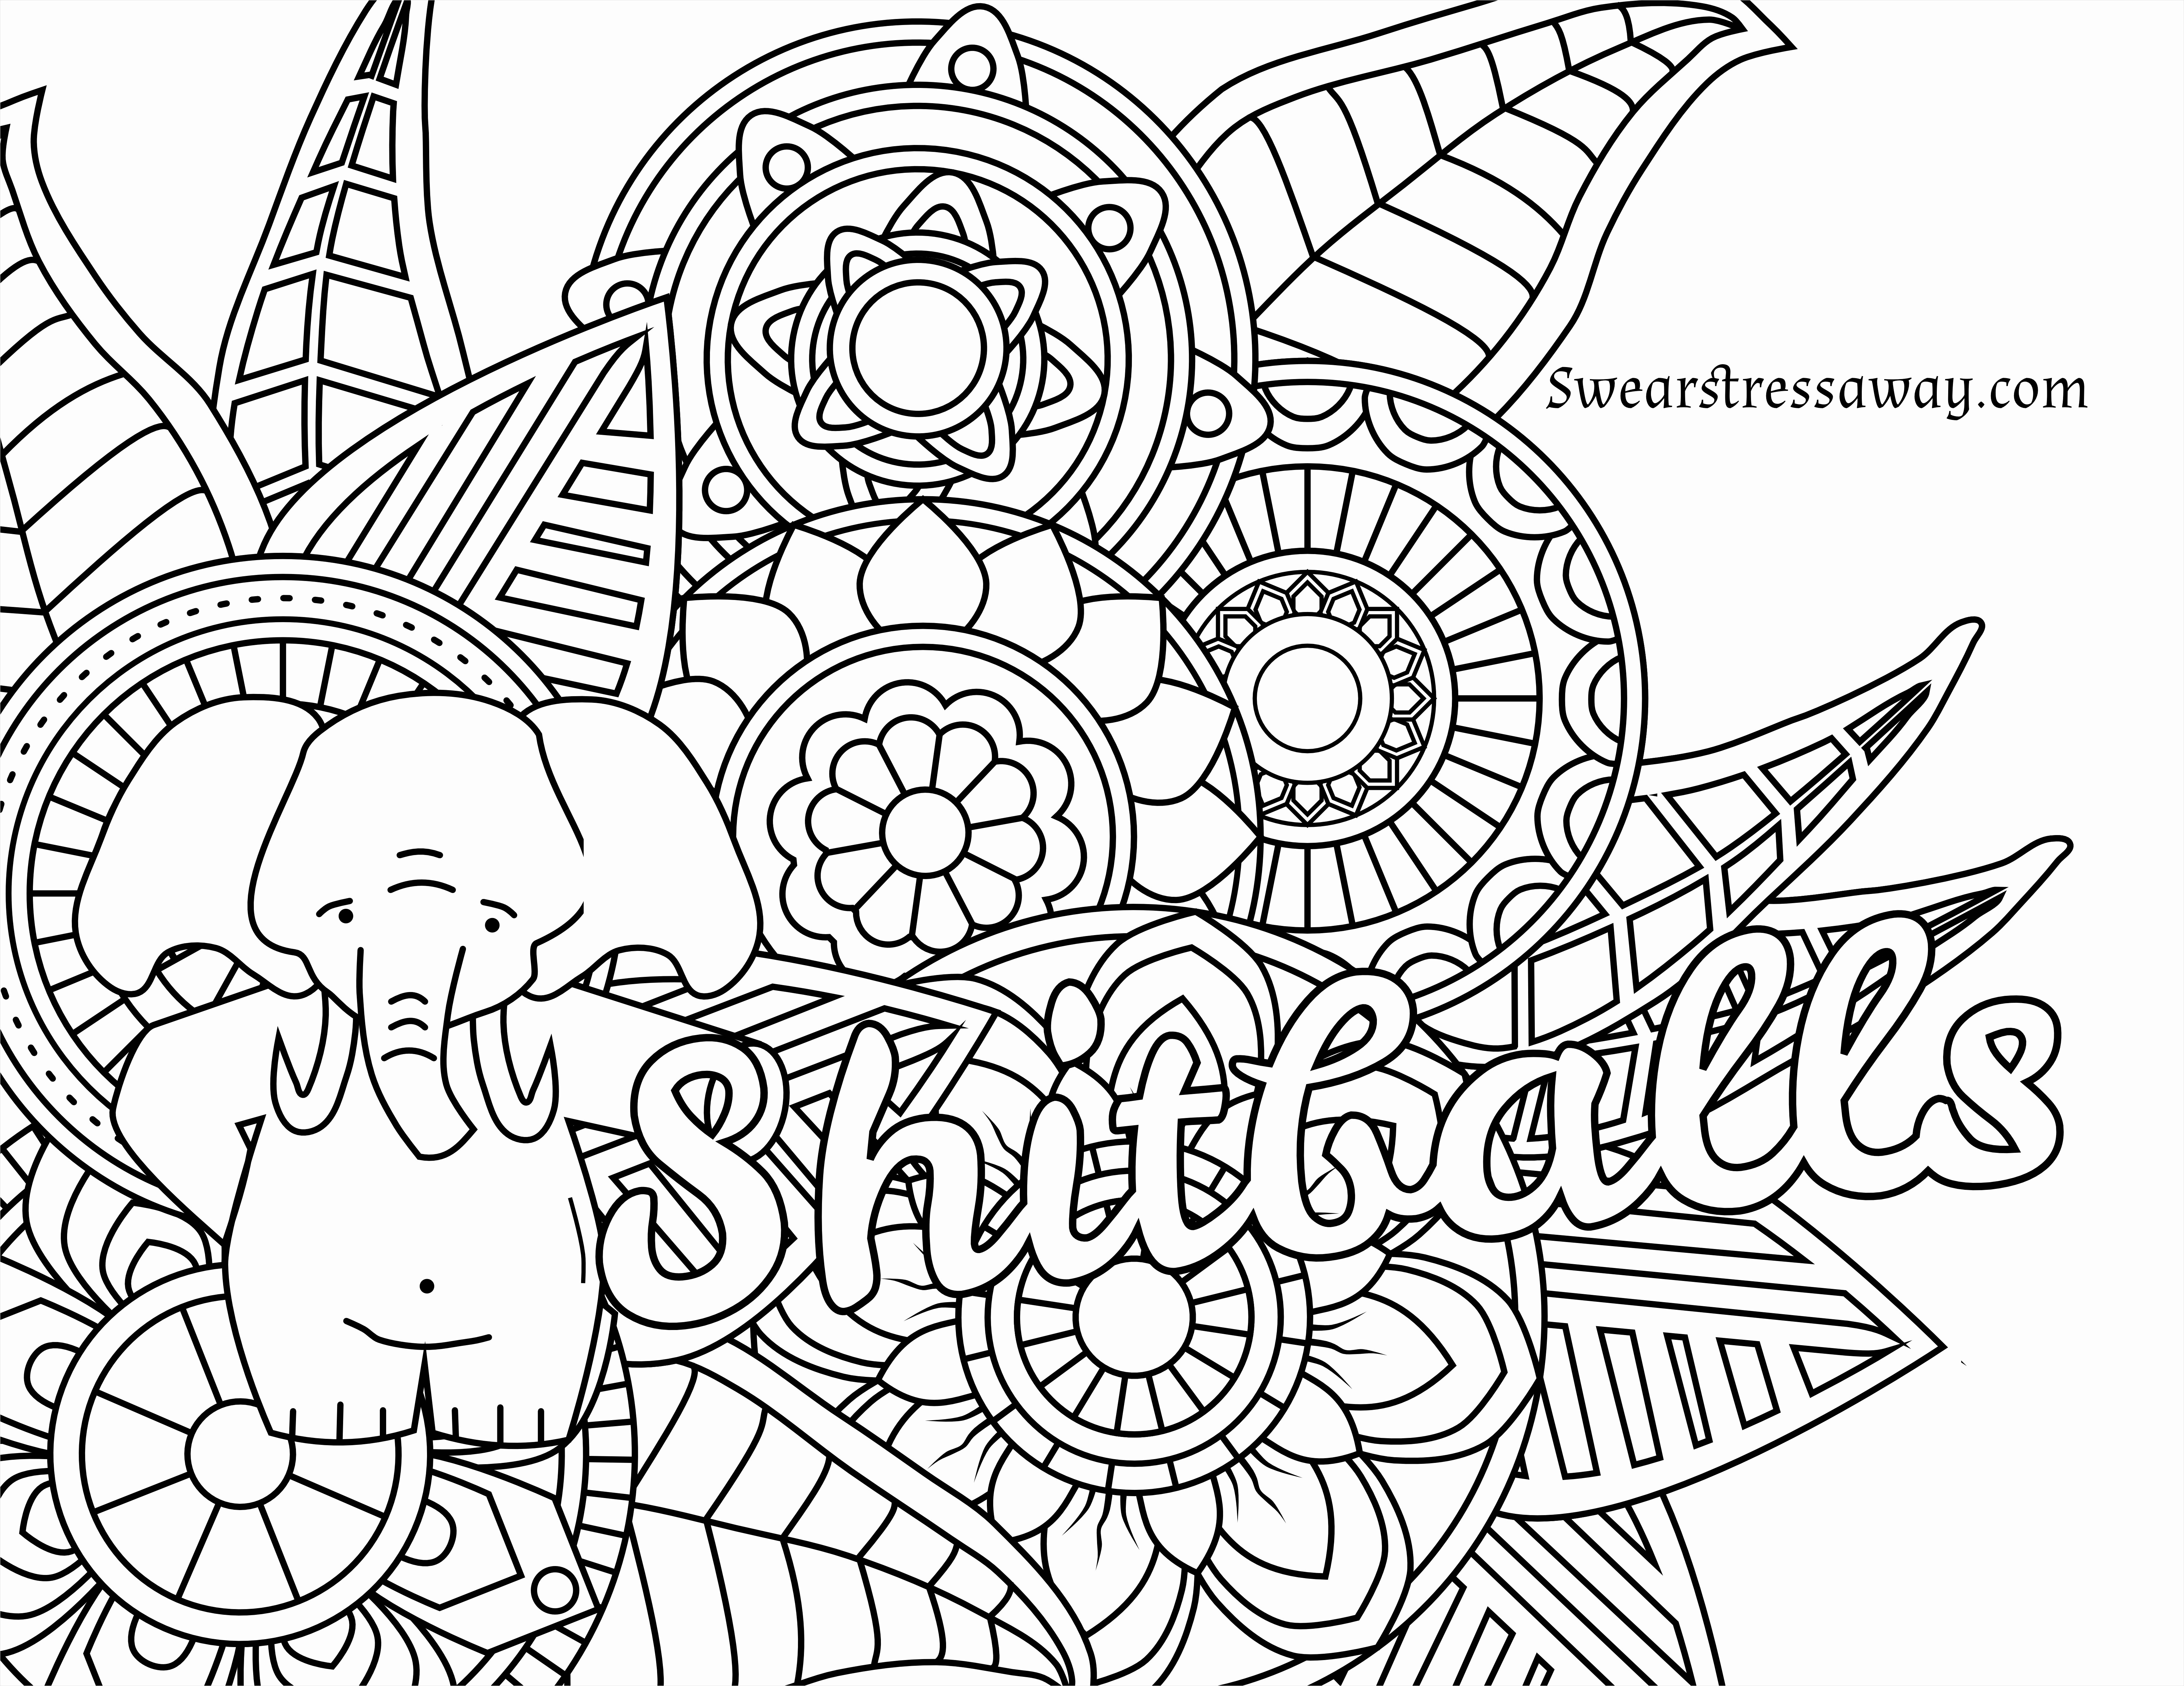 Cuss Words Coloring Pages  Collection 7r - To print for your project